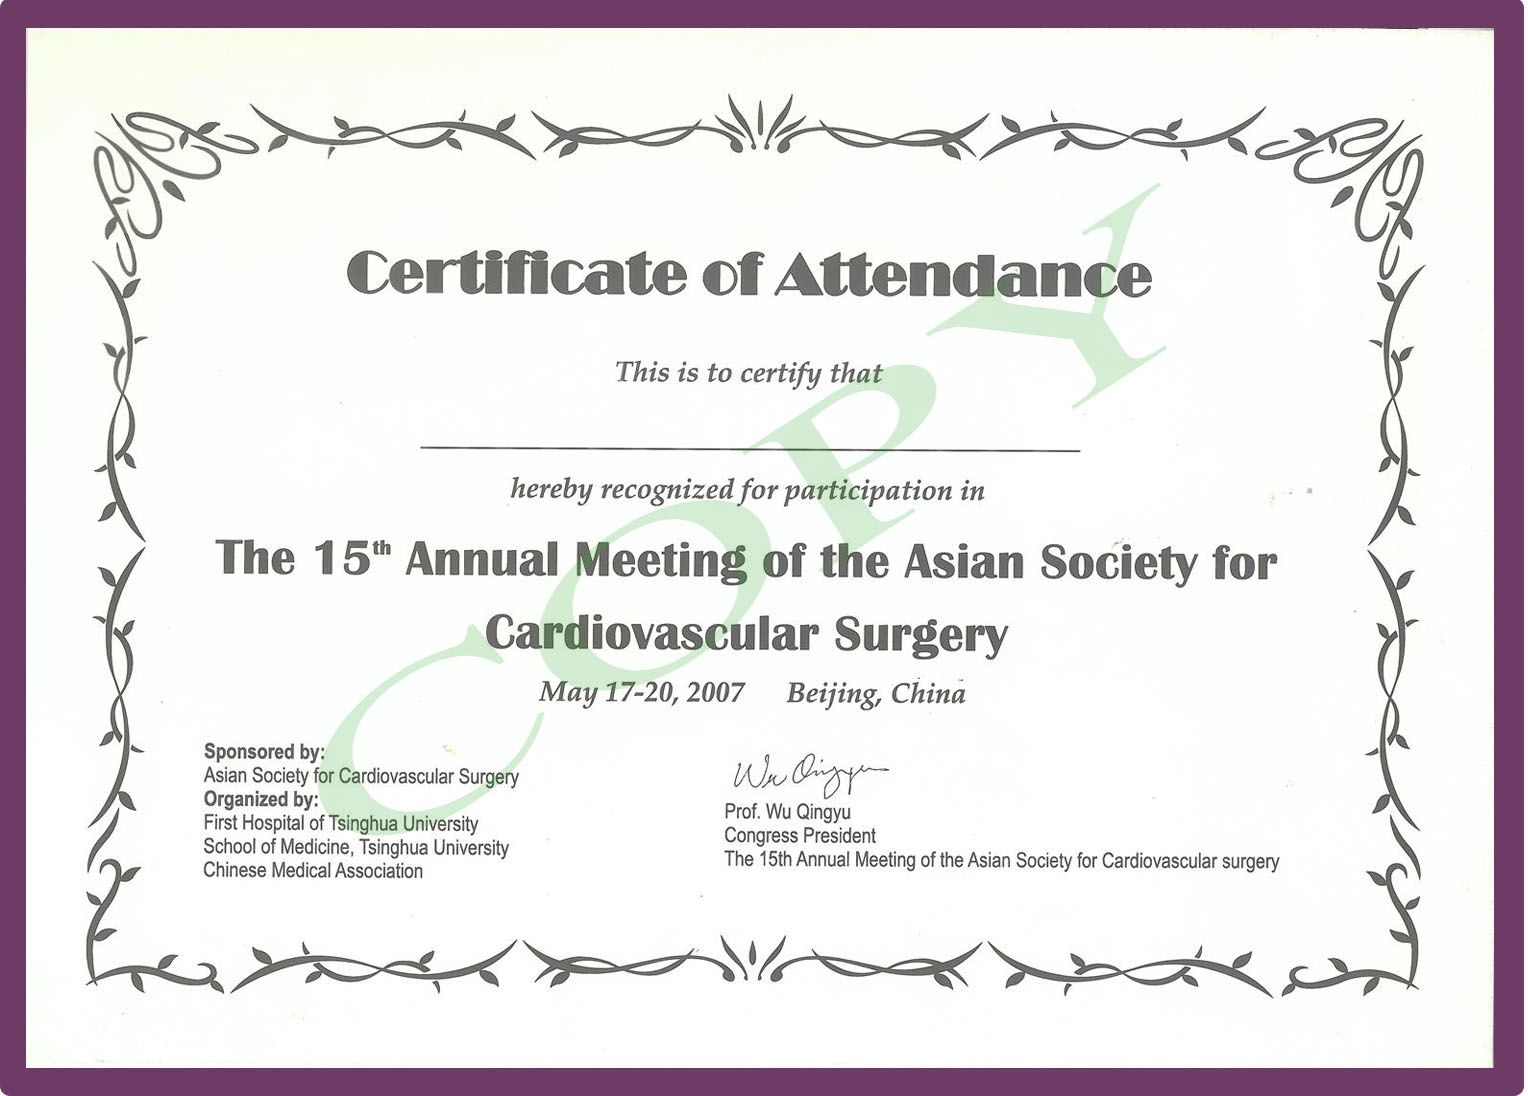 The Glamorous Cme Certificate Template   Pics Photos Phd with regard to Quality Conference Participation Certificate Template